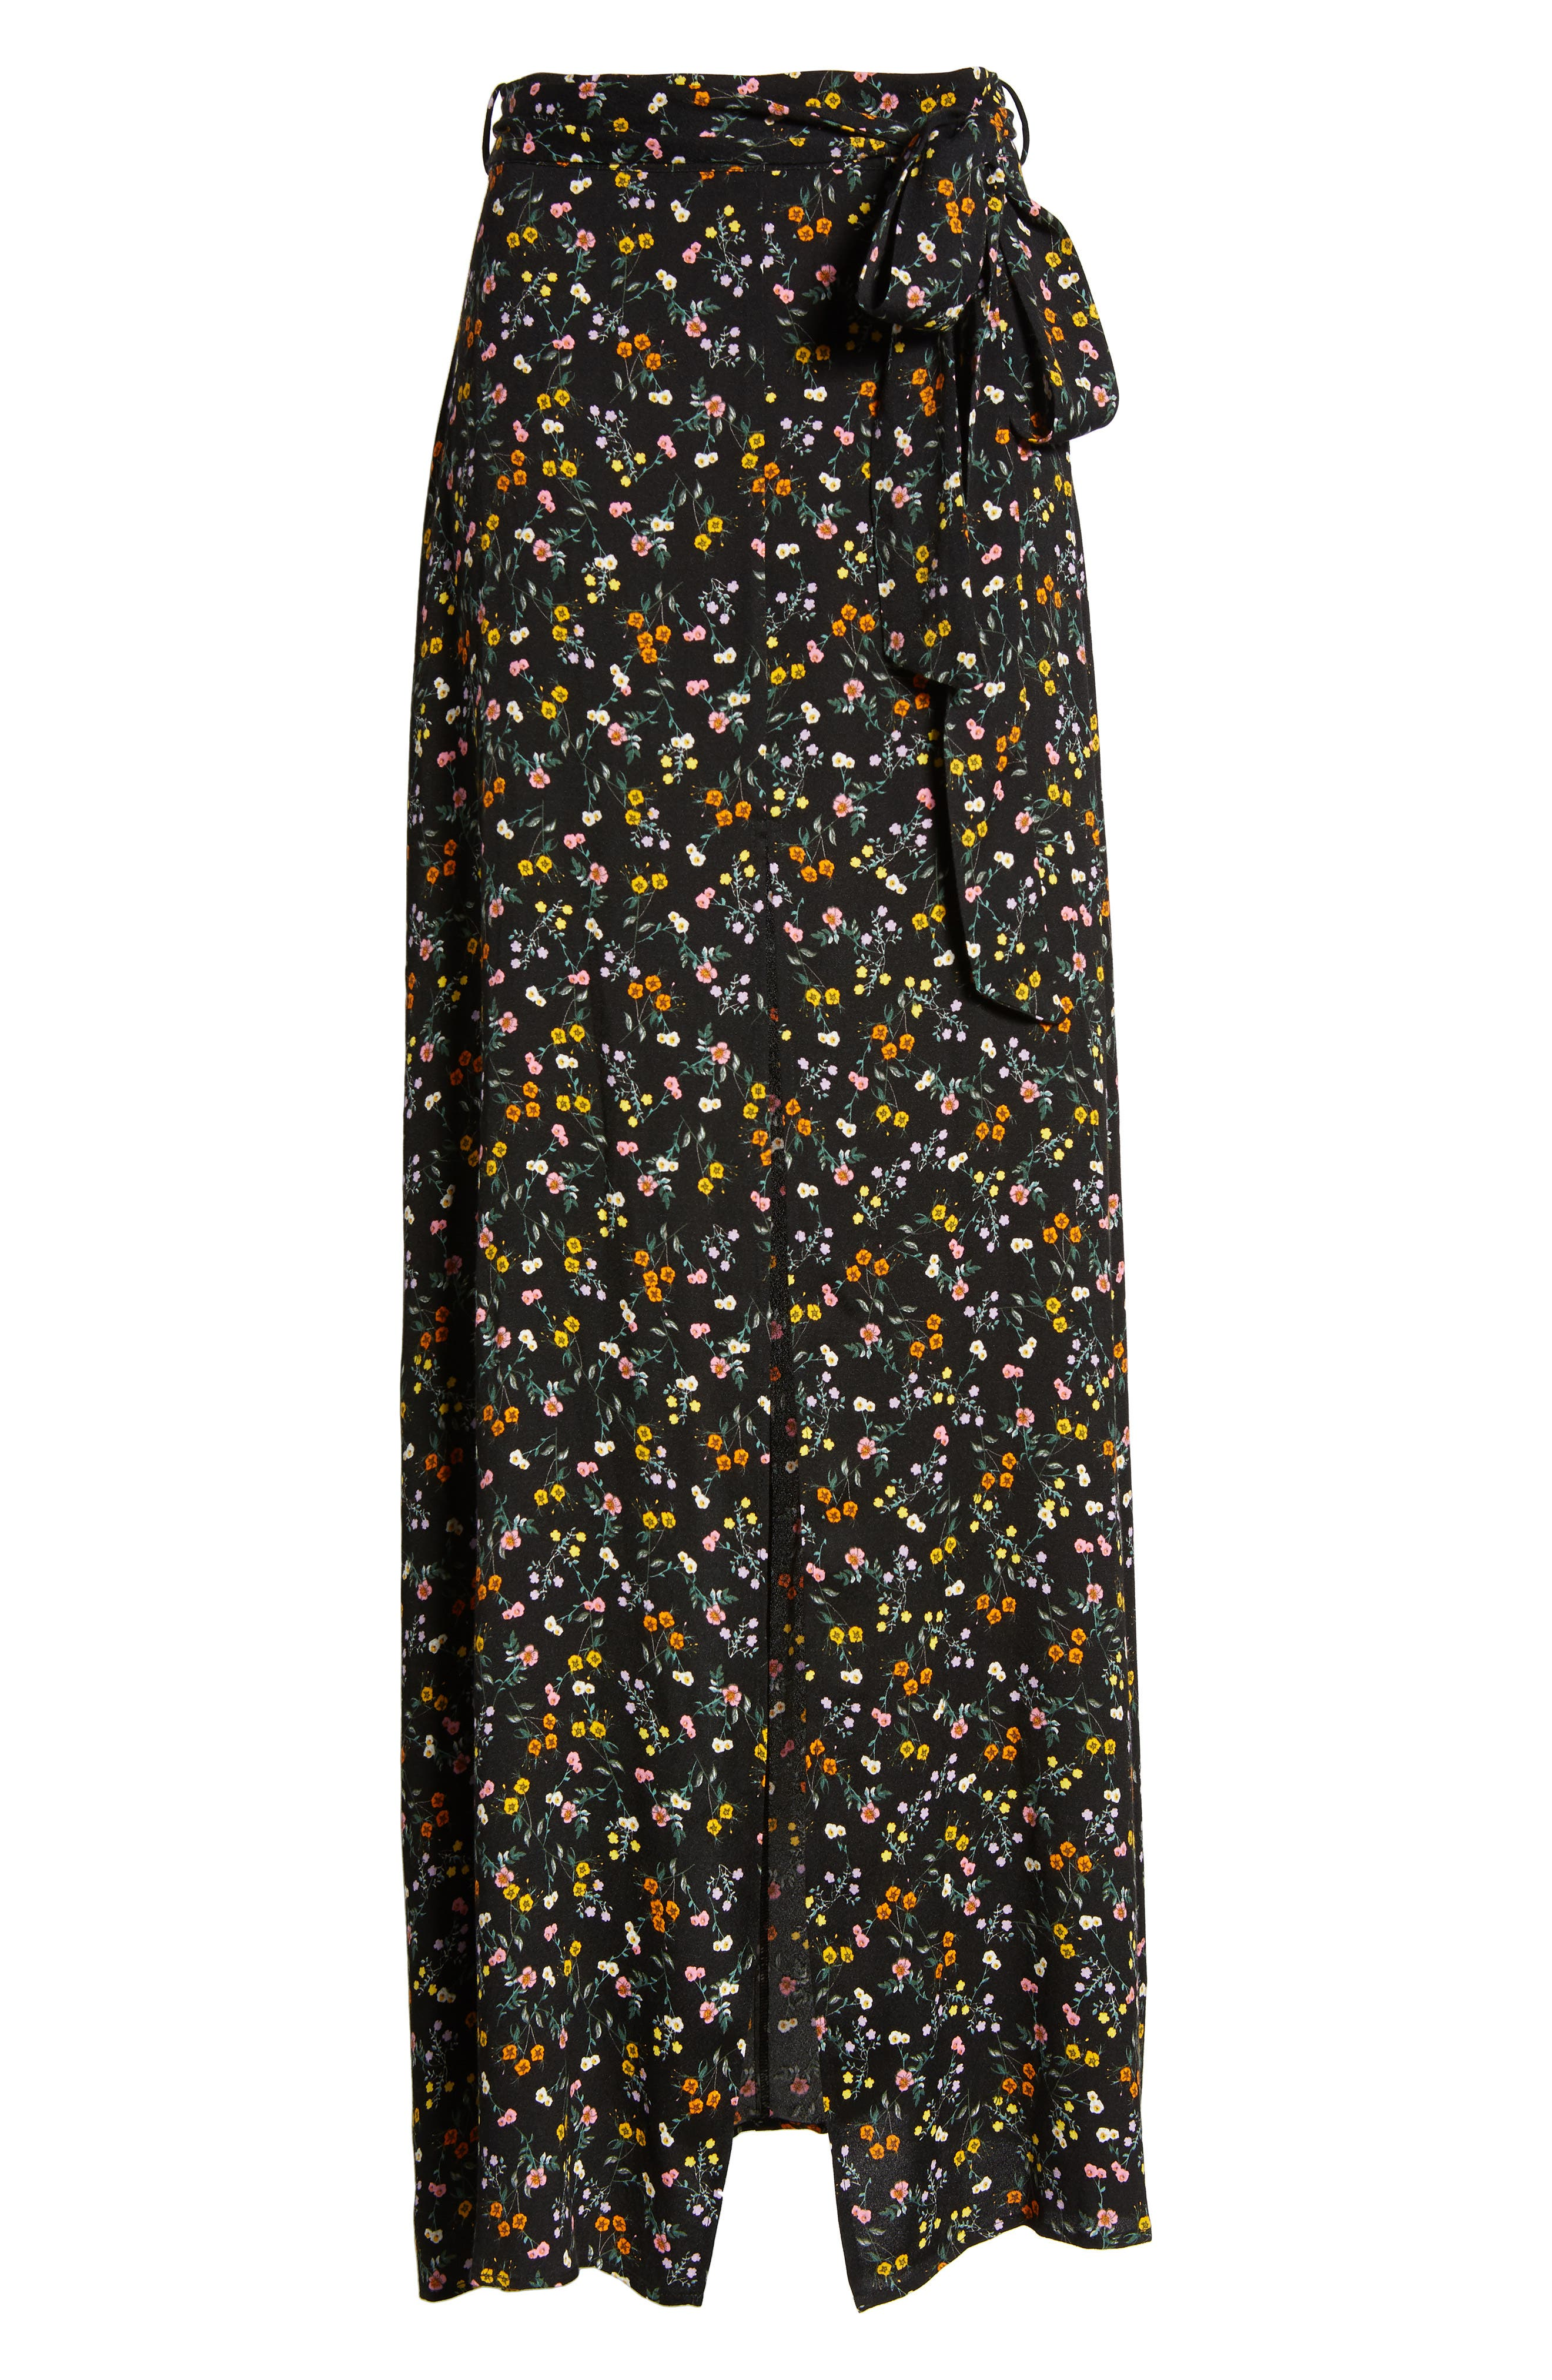 Alessandra Maxi Skirt,                             Alternate thumbnail 6, color,                             001